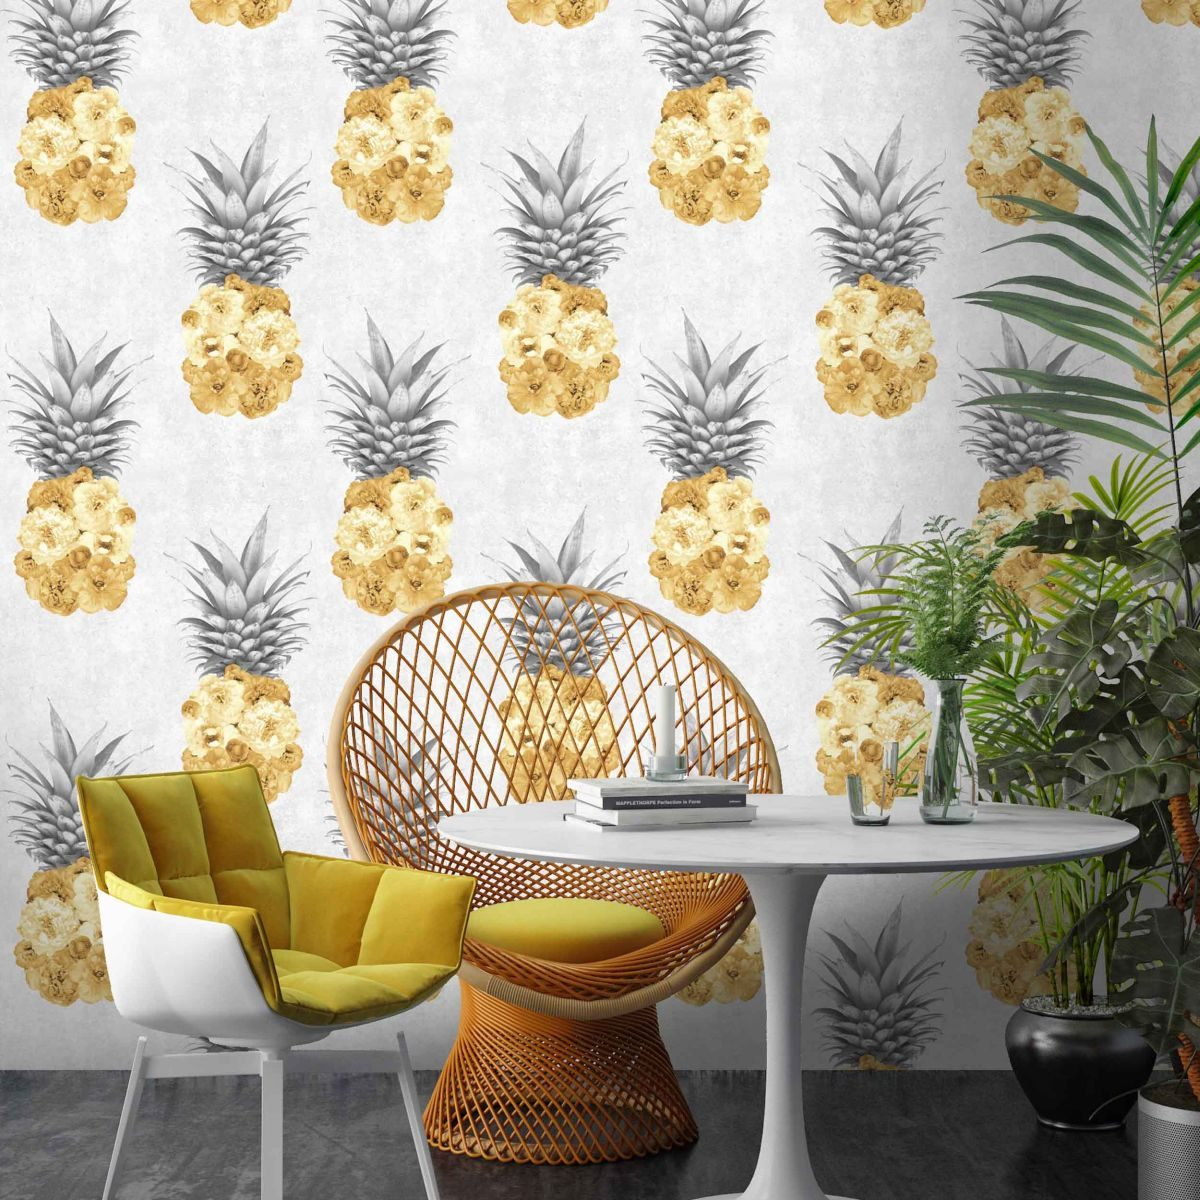 9woodchip-and-magnolia_ludic-floral-pineapple-feature-wallpaper-in-grey-and-yellow-1200x1200.jpg